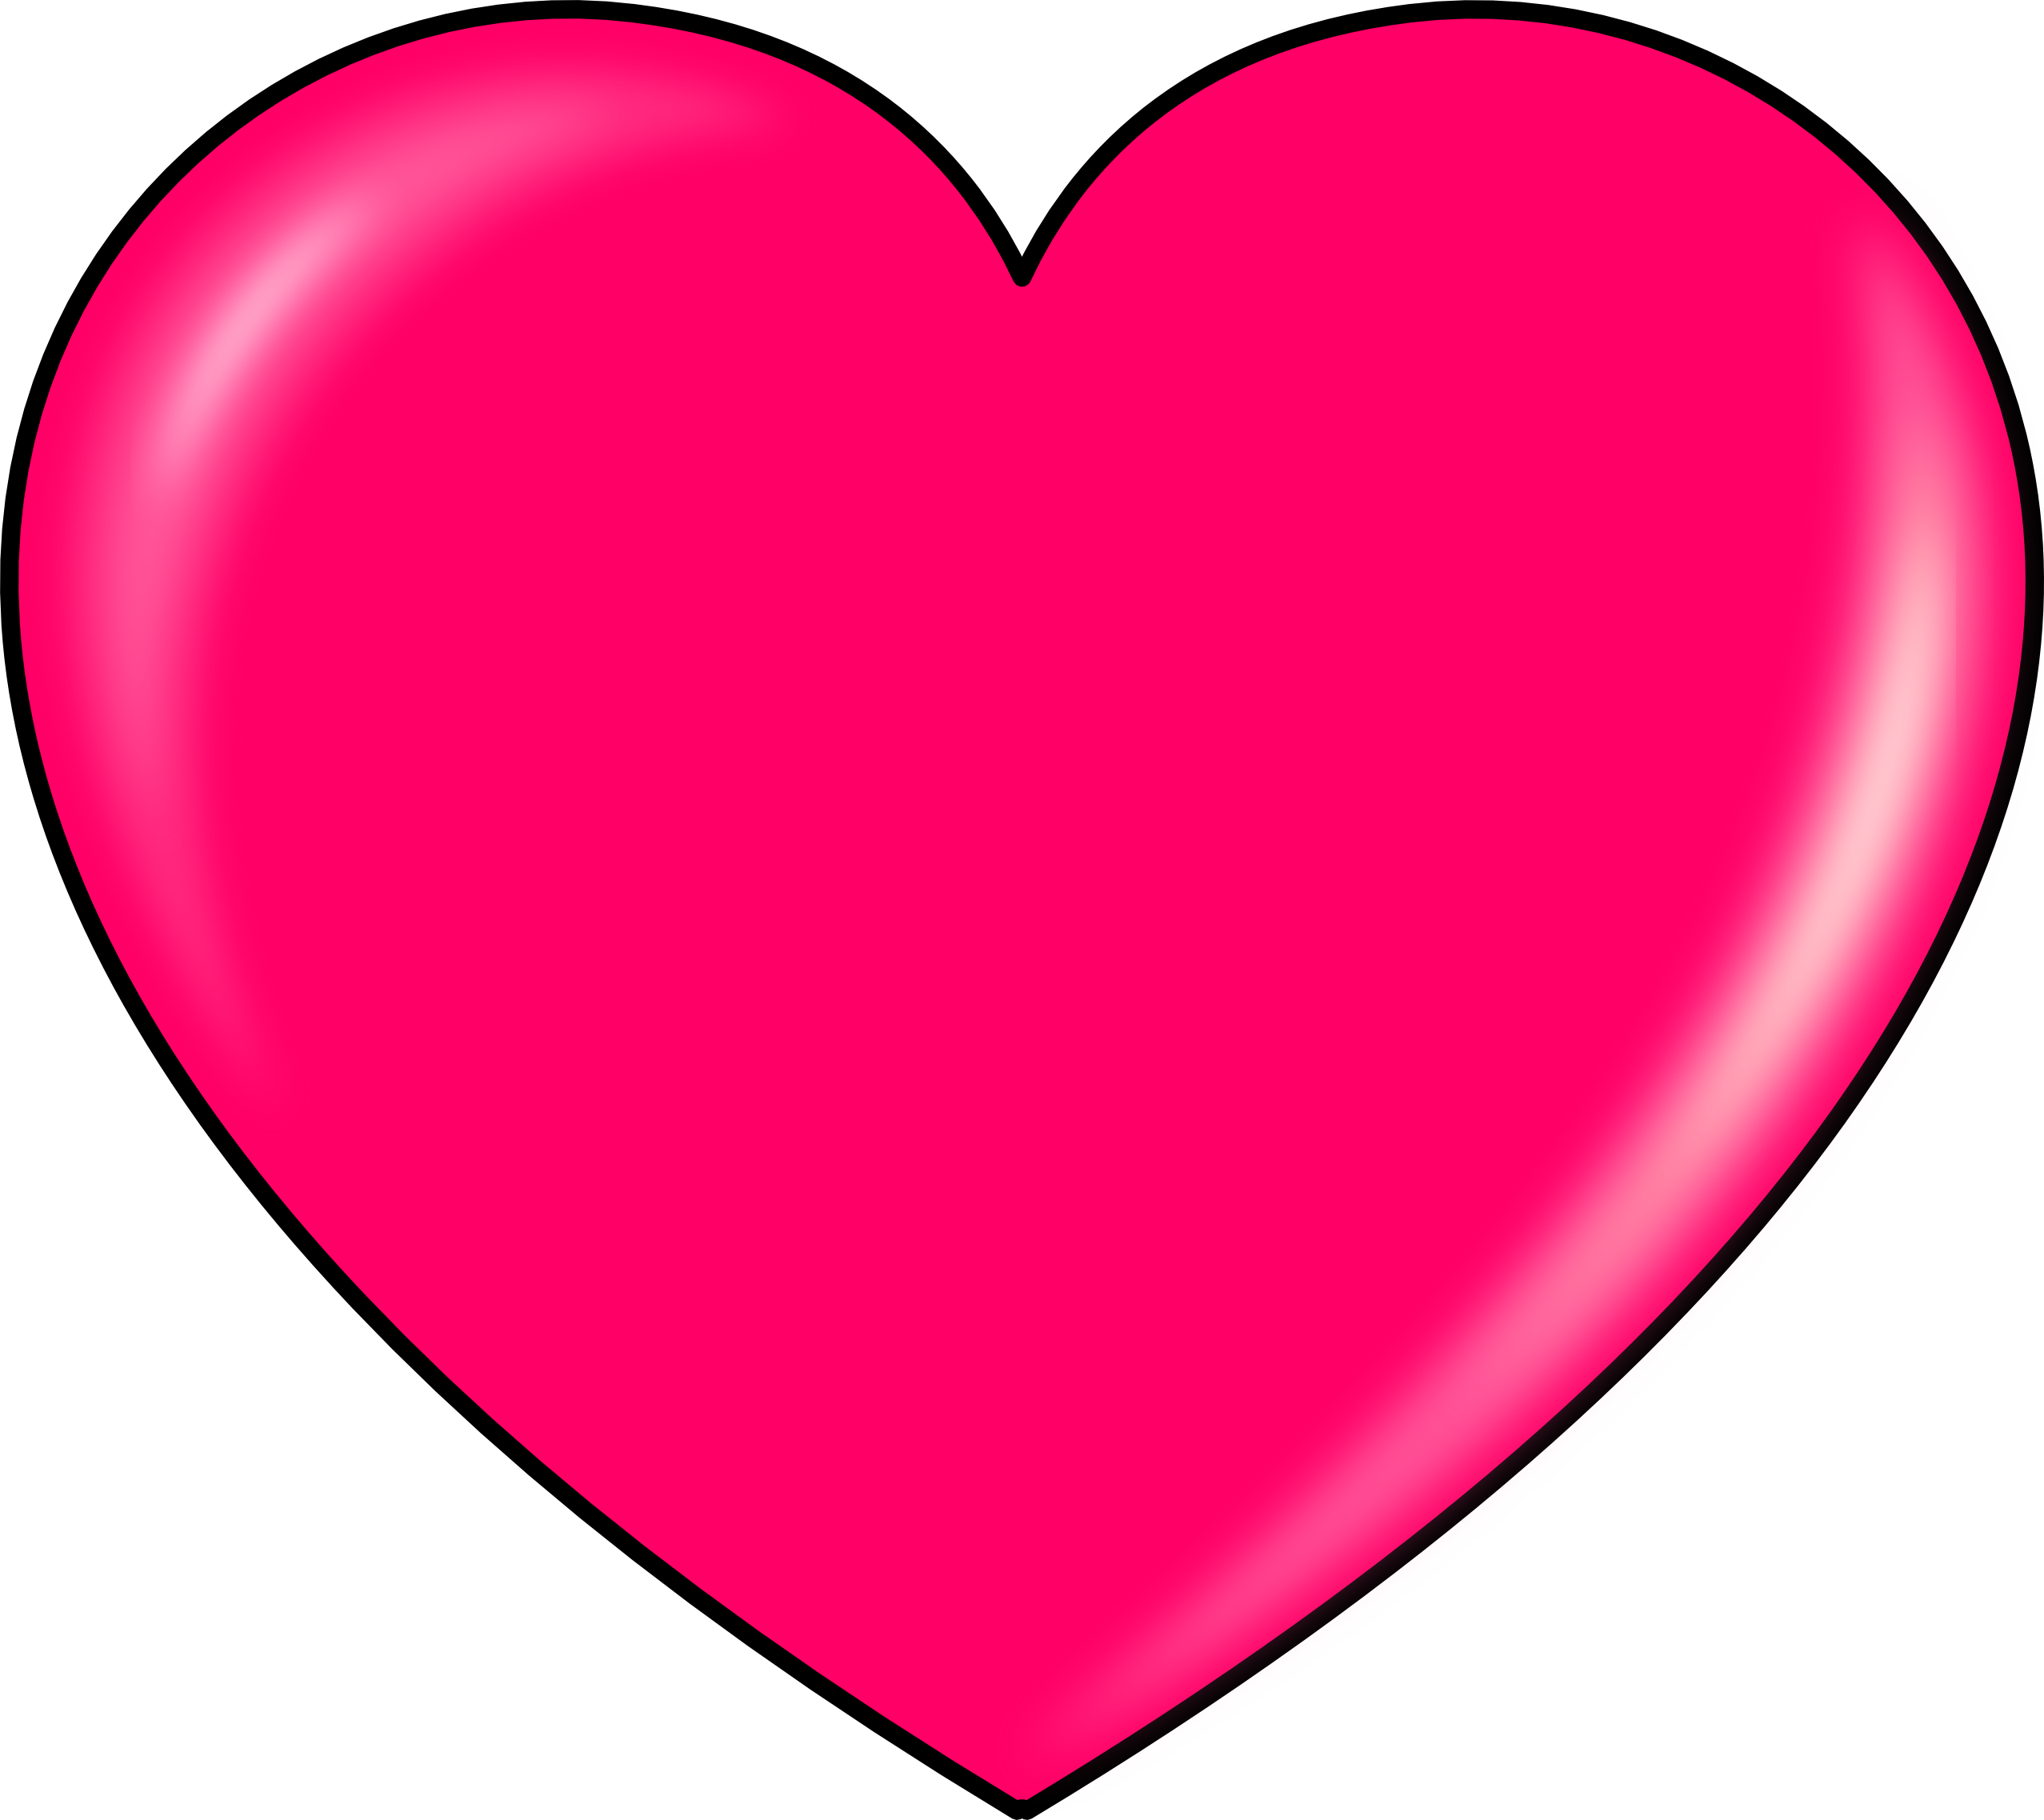 Hot pink heart clipart picture transparent Heart PNG free images, download picture transparent